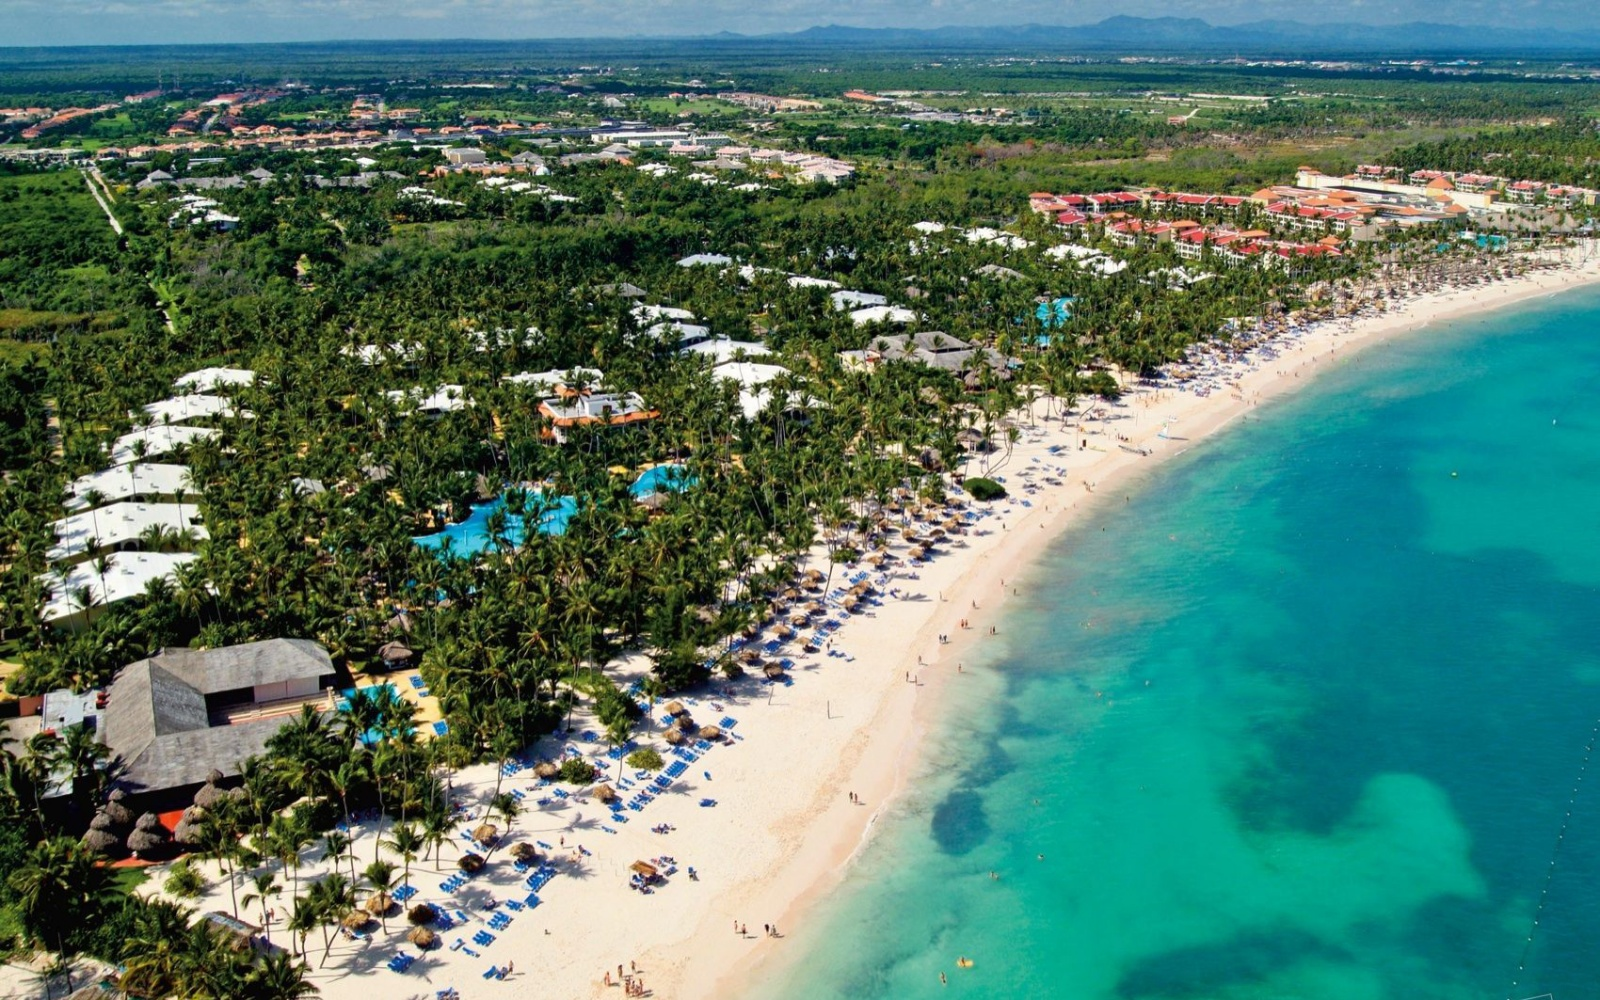 Meliá caribe tropical punta cana dominican republic the best affordable all inclusive resorts travel leisure